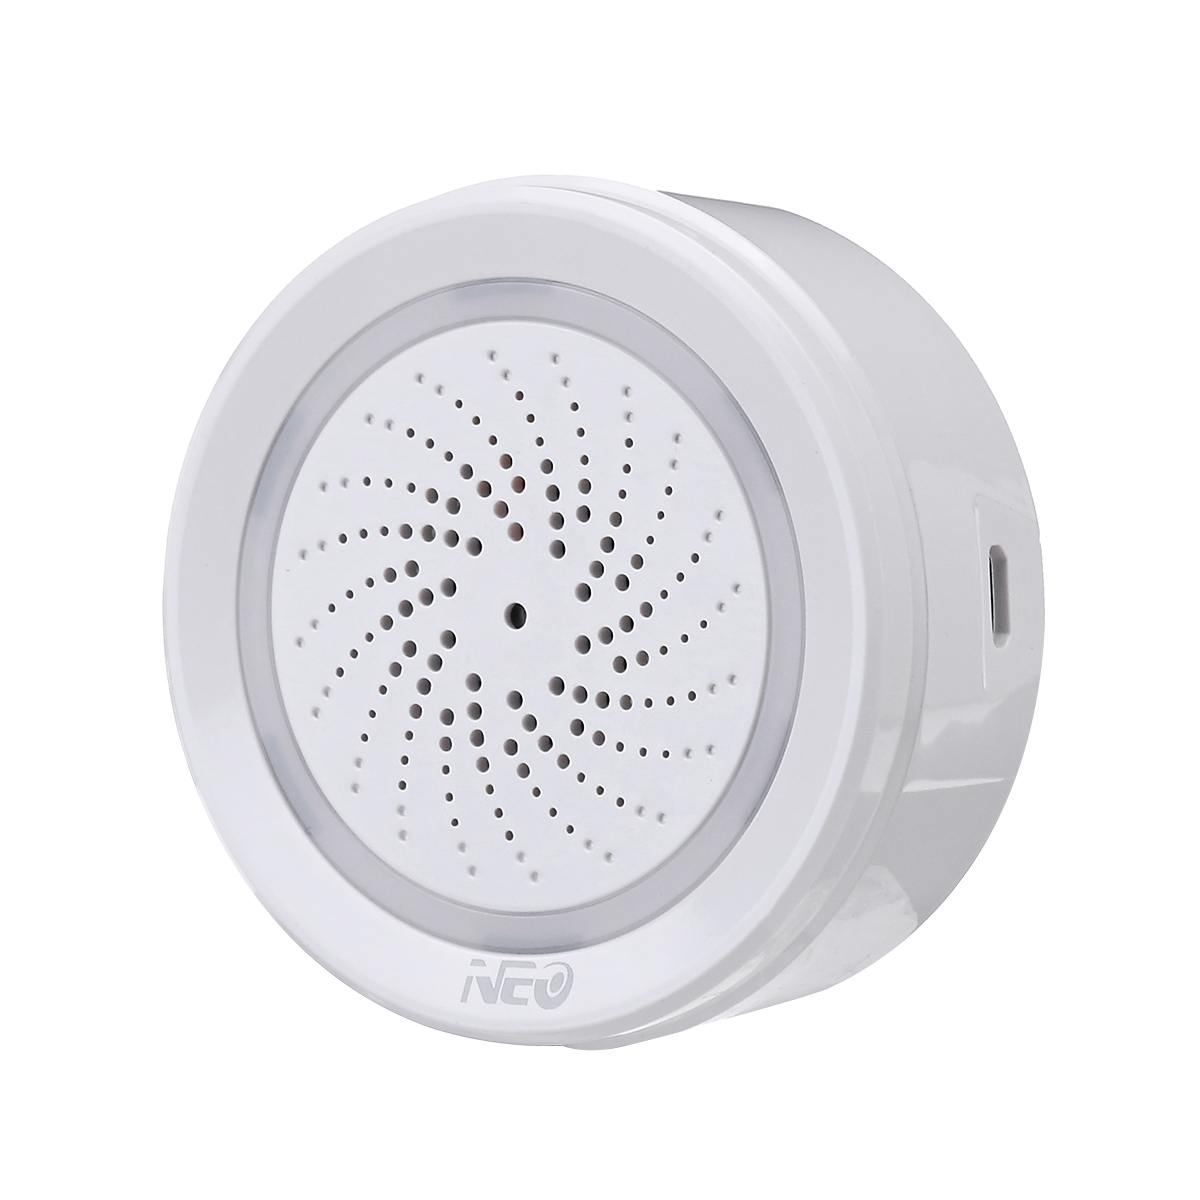 White 2.4GHz WIFI Smart Temperature Humidity Sensor Wireless Battery Powered Sound Alarm APP Control  For Home Office Work